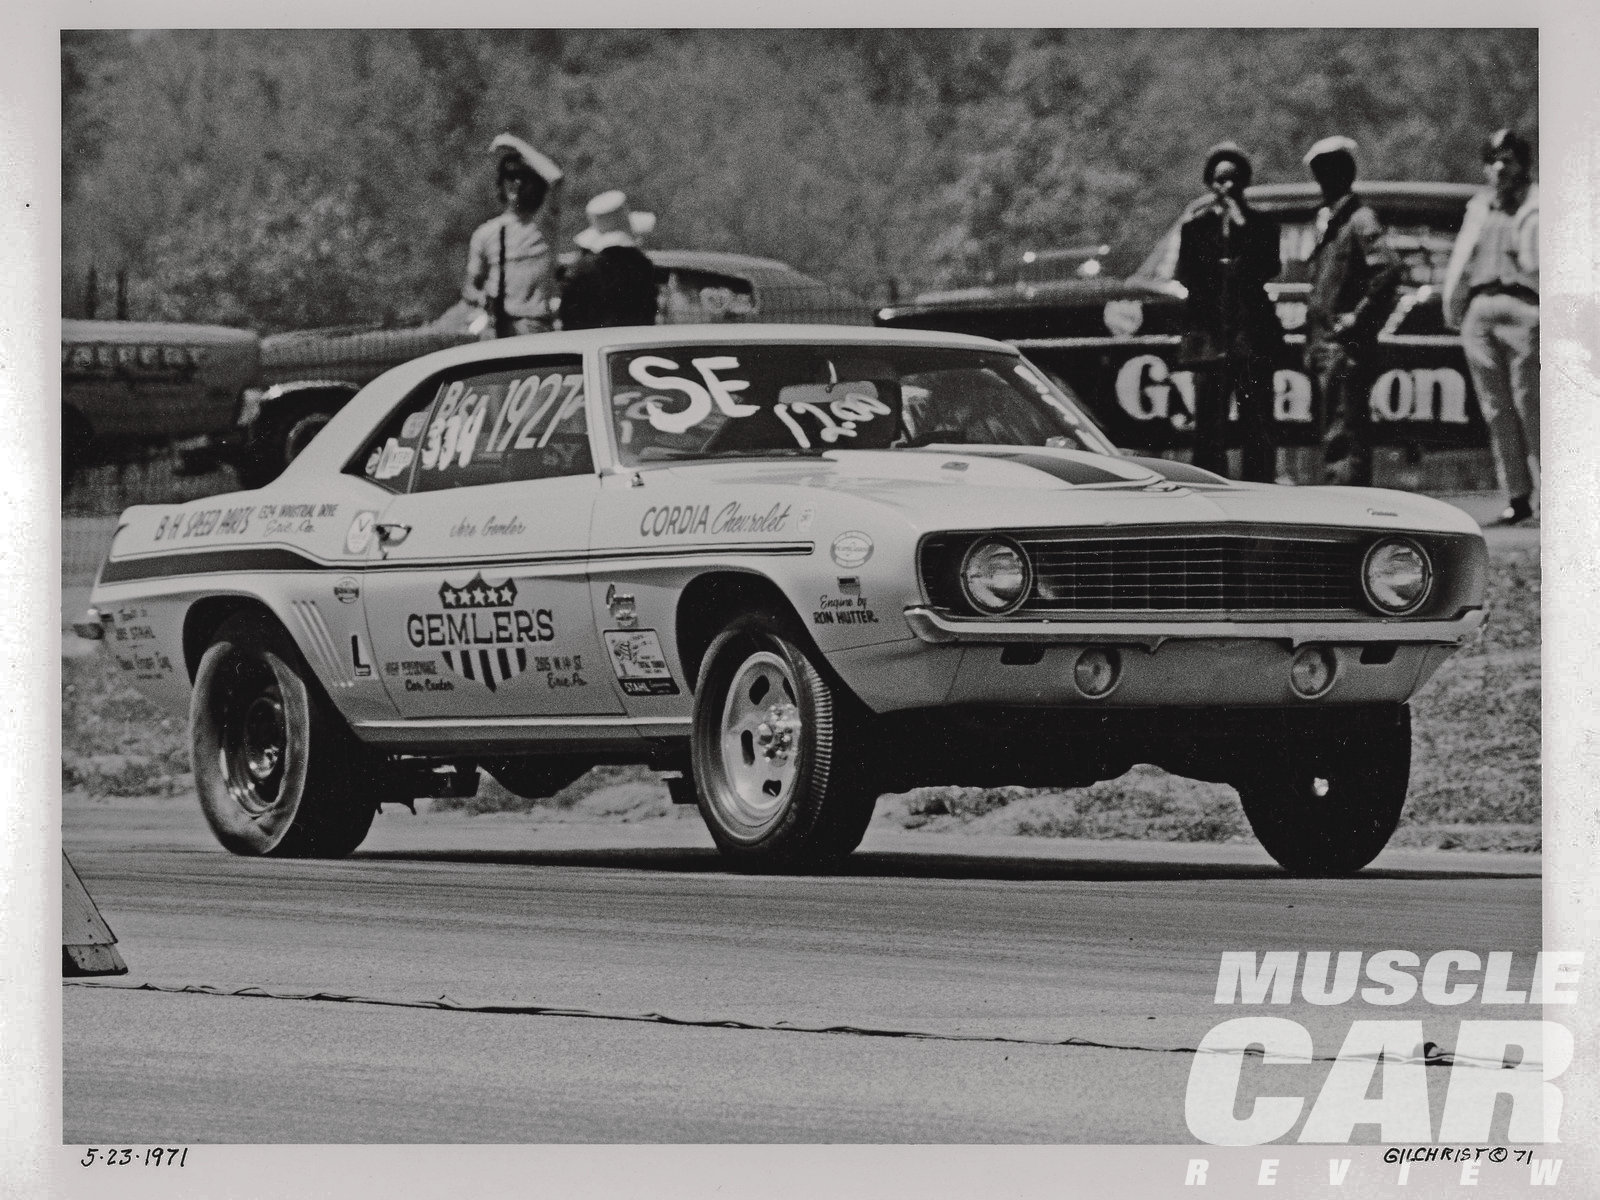 Back in the day, Jere and his Yenko spent a lot of time at the drags competing in the Pure Stock, Stock, Super Stock and Modified Production classes. This early photo taken at Thompson Dragway by Charles Gilchrist shows the Yenko competing in B/SA with Stahl headers, drag slicks, and a Ron Hutter–blueprinted engine.